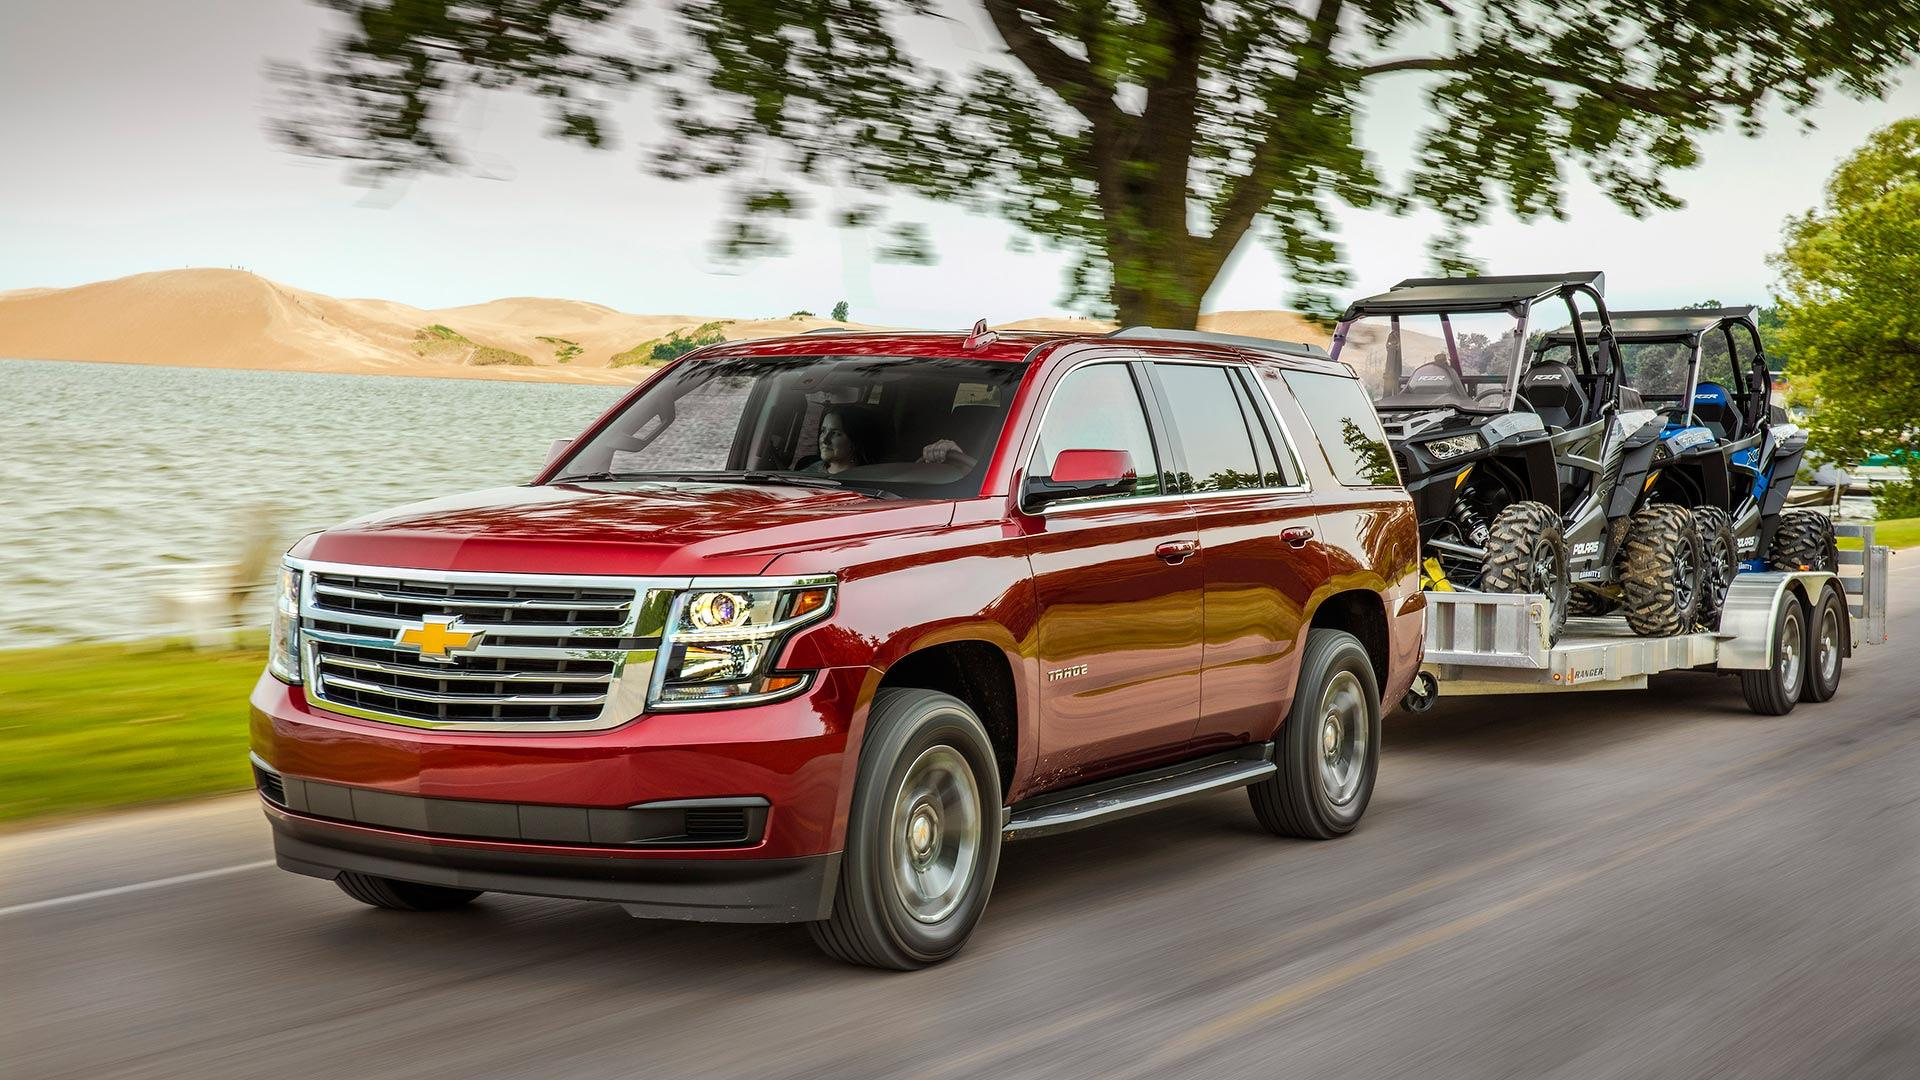 Chevy Launches Two Row Tahoe Custom Lowers Price to $45K